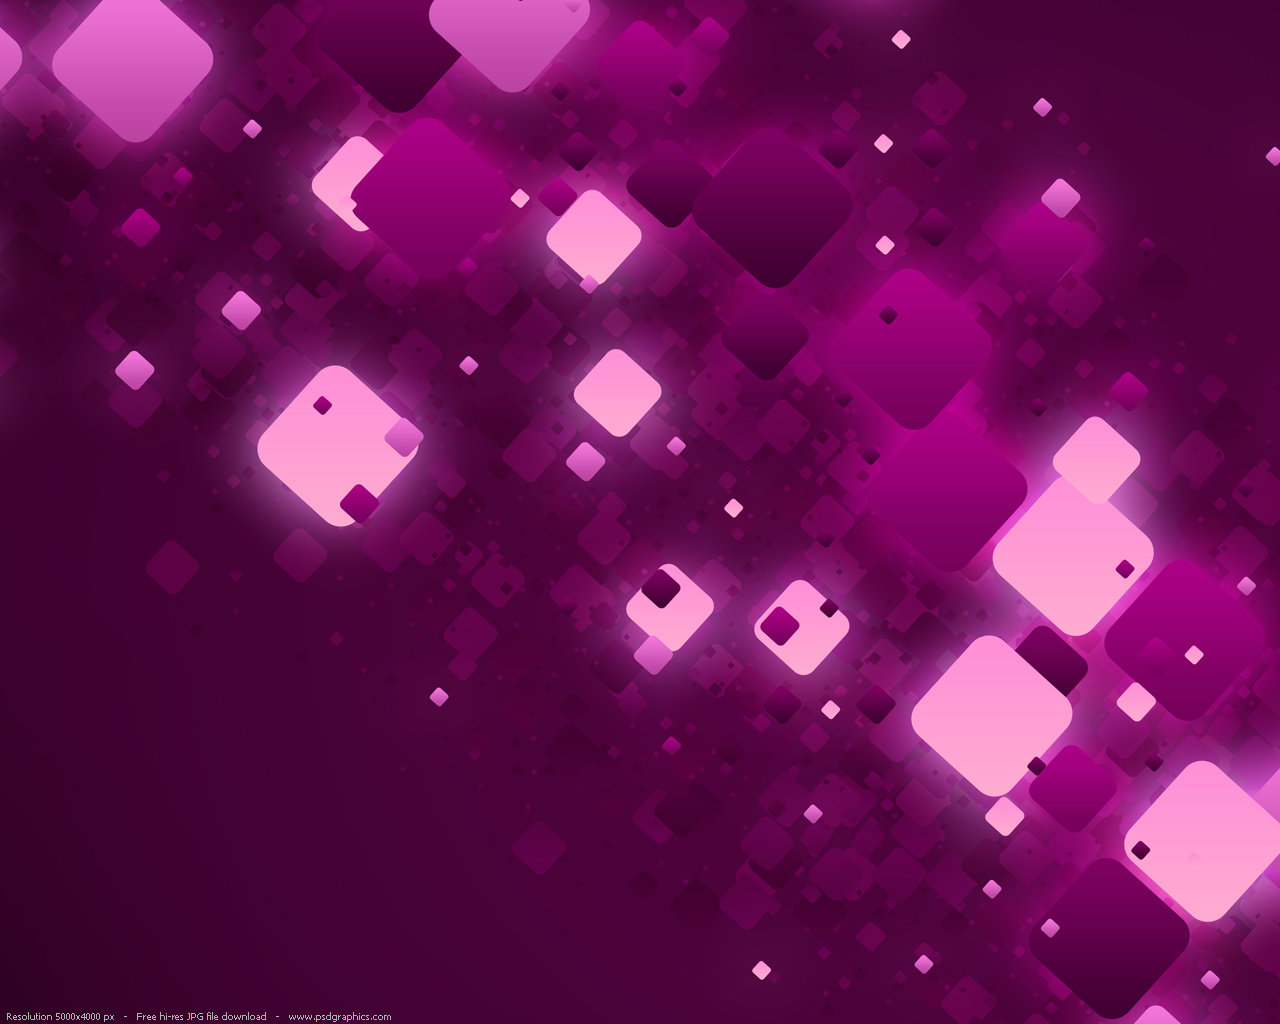 http://www.psdgraphics.com/file/purple-abstract.jpg